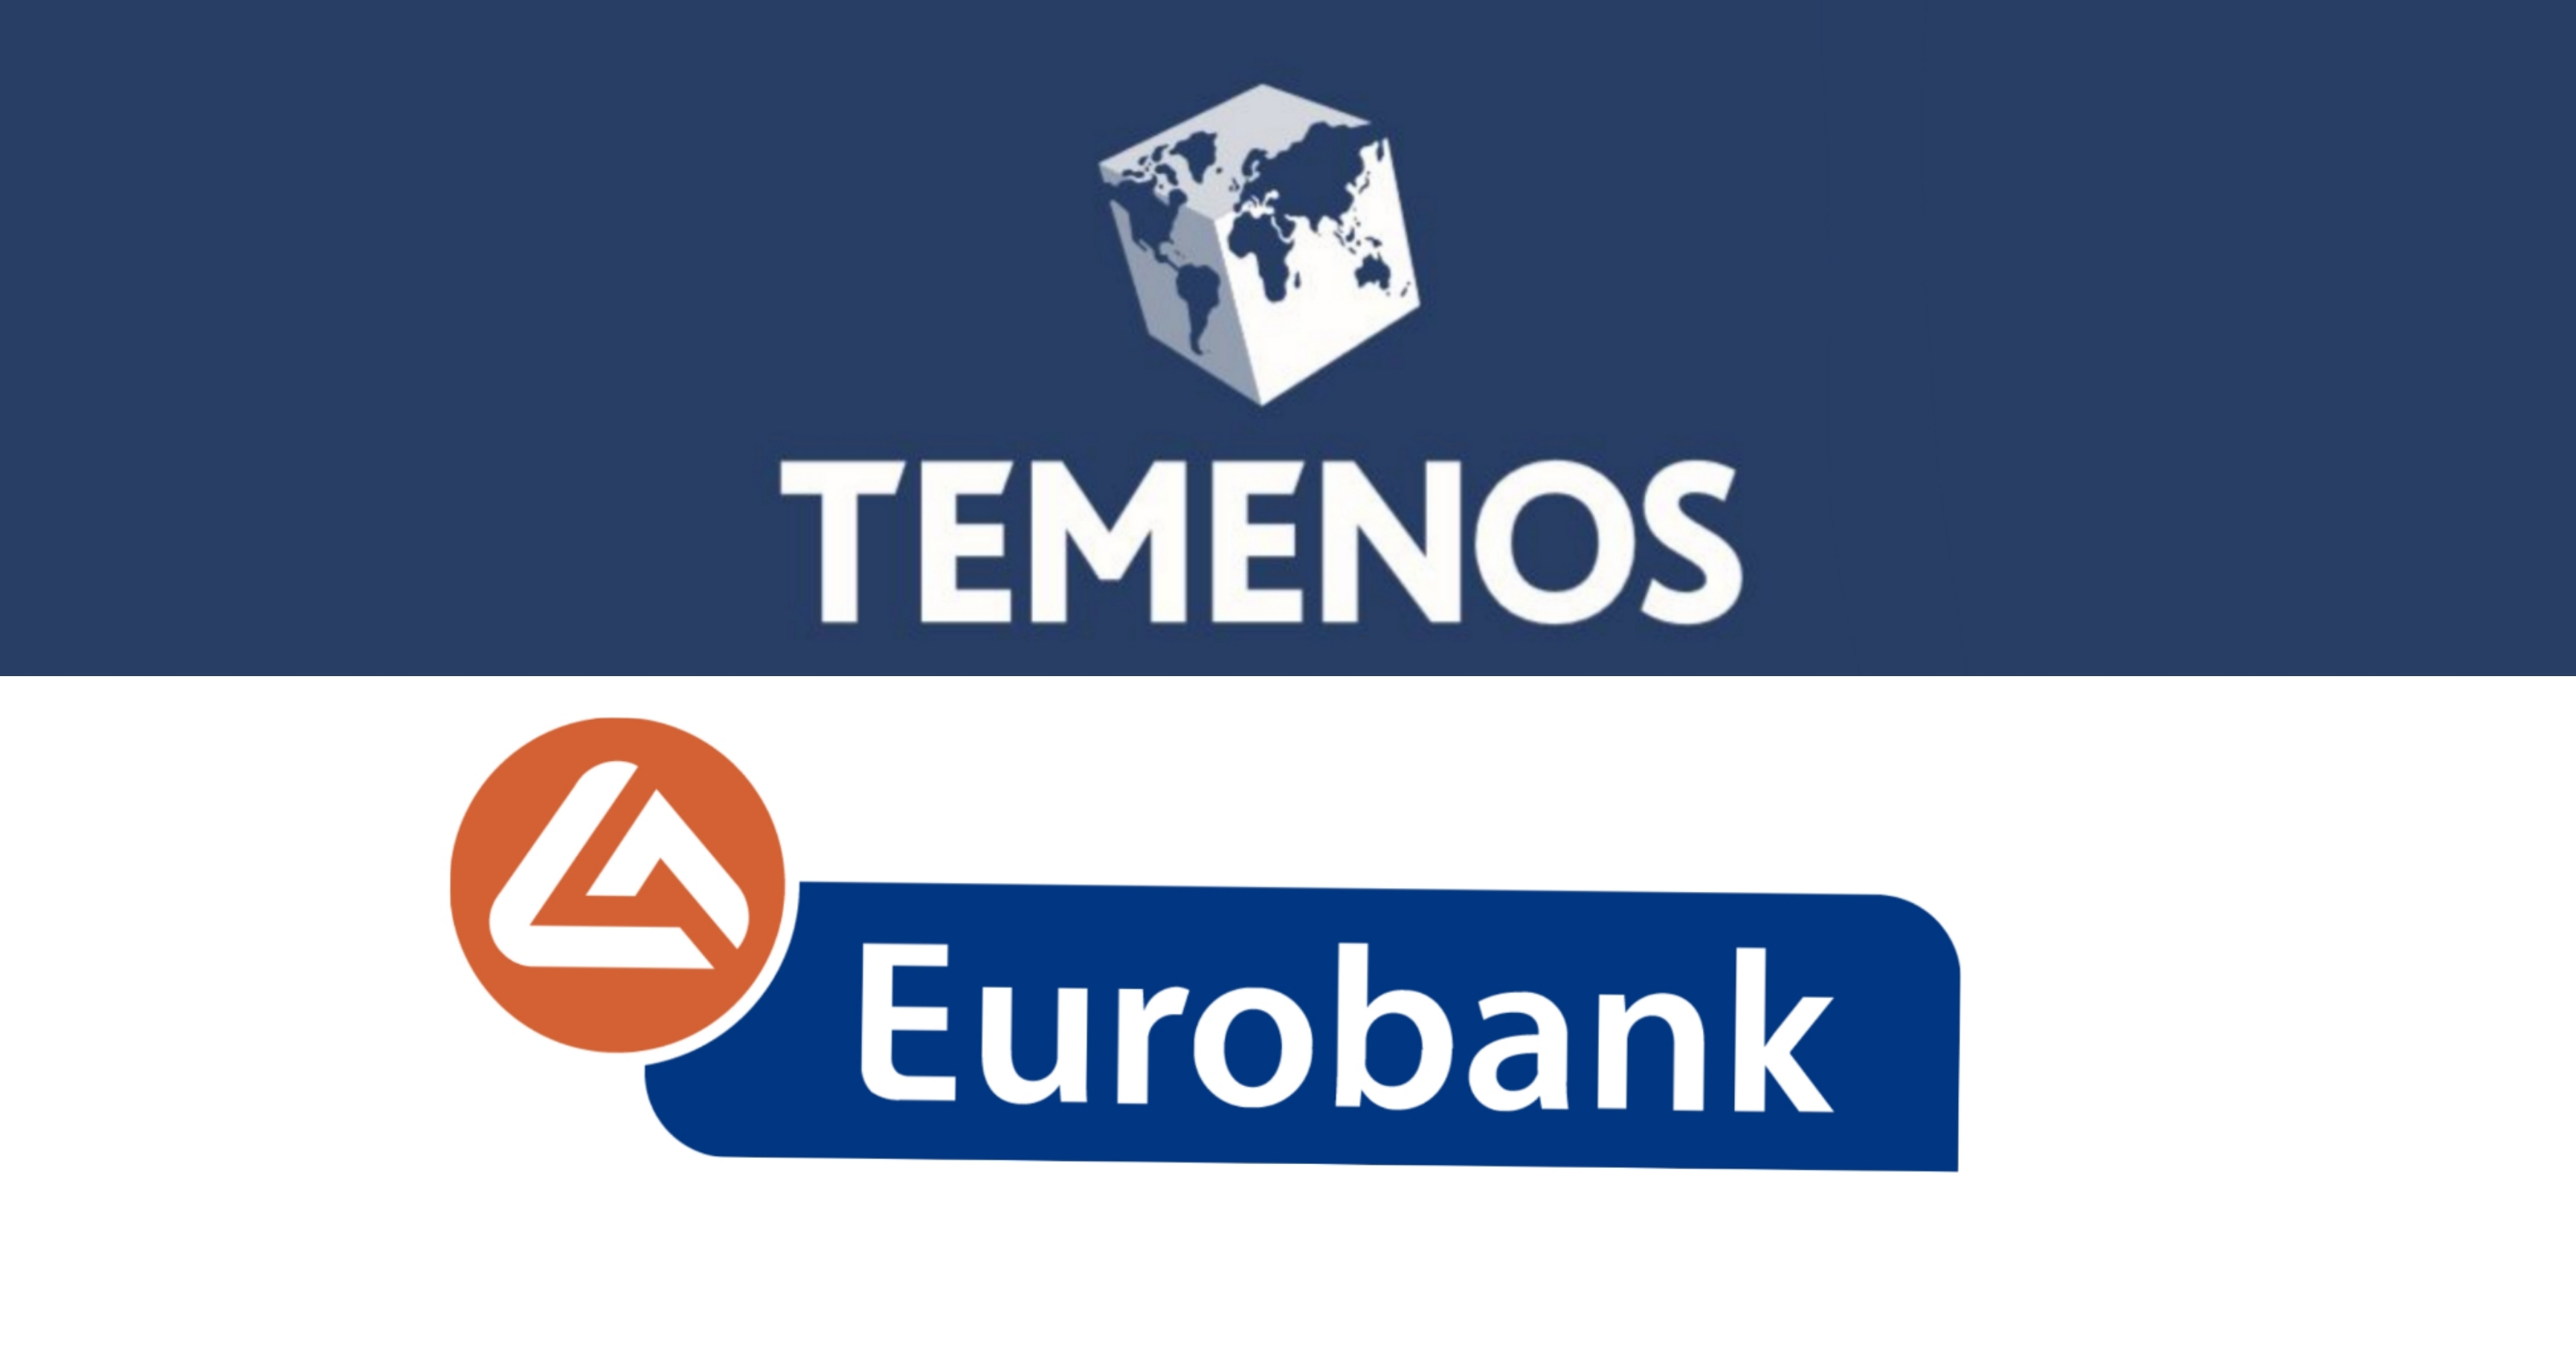 Greece's Eurobank Selects Temenos to Reimagine Wealth Management for the Digital Age